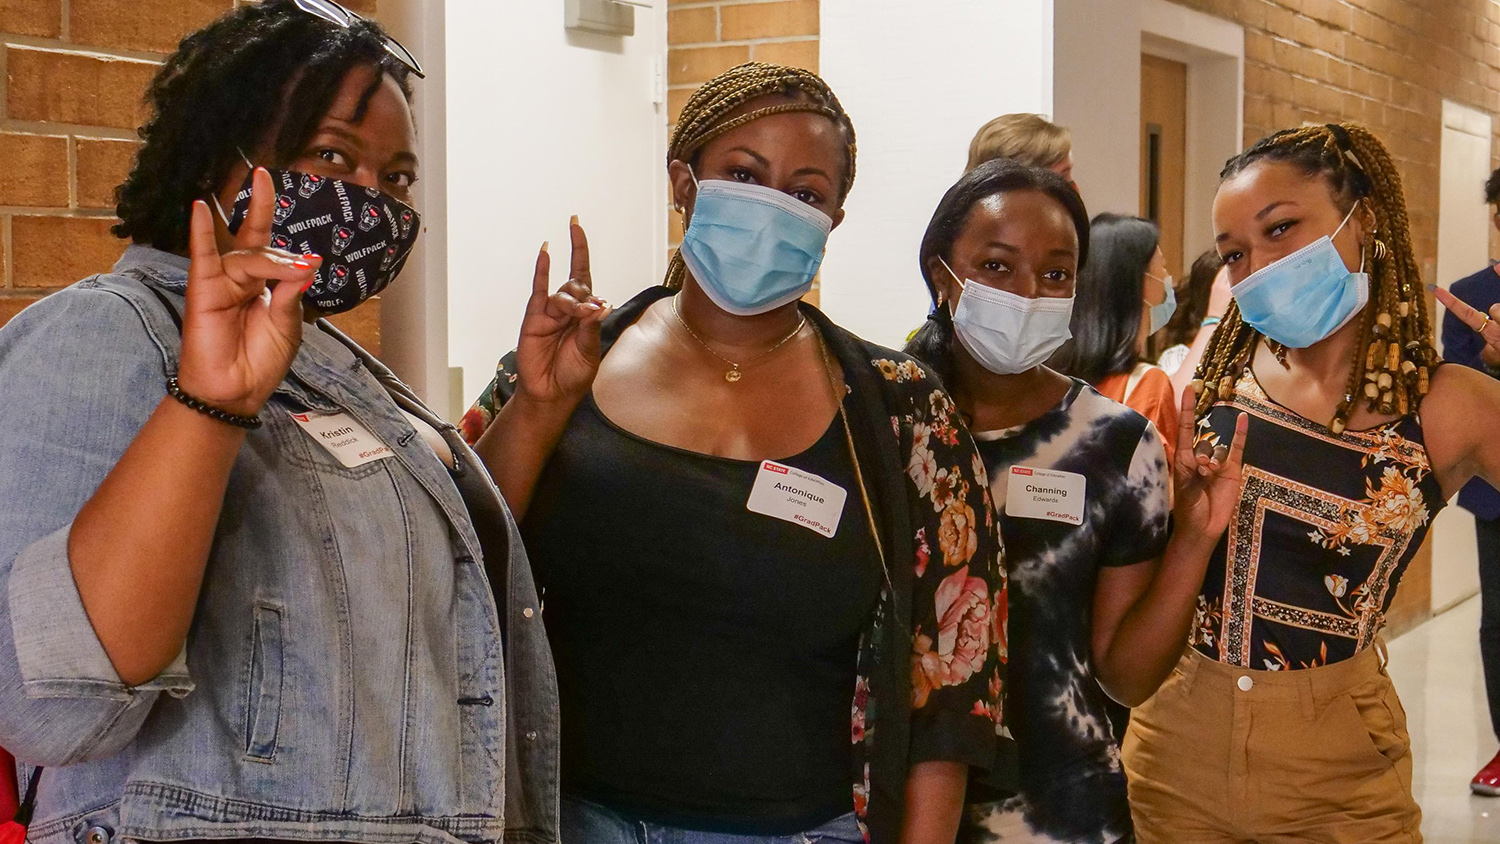 Students at New Graduate Student Orientation in August 2021